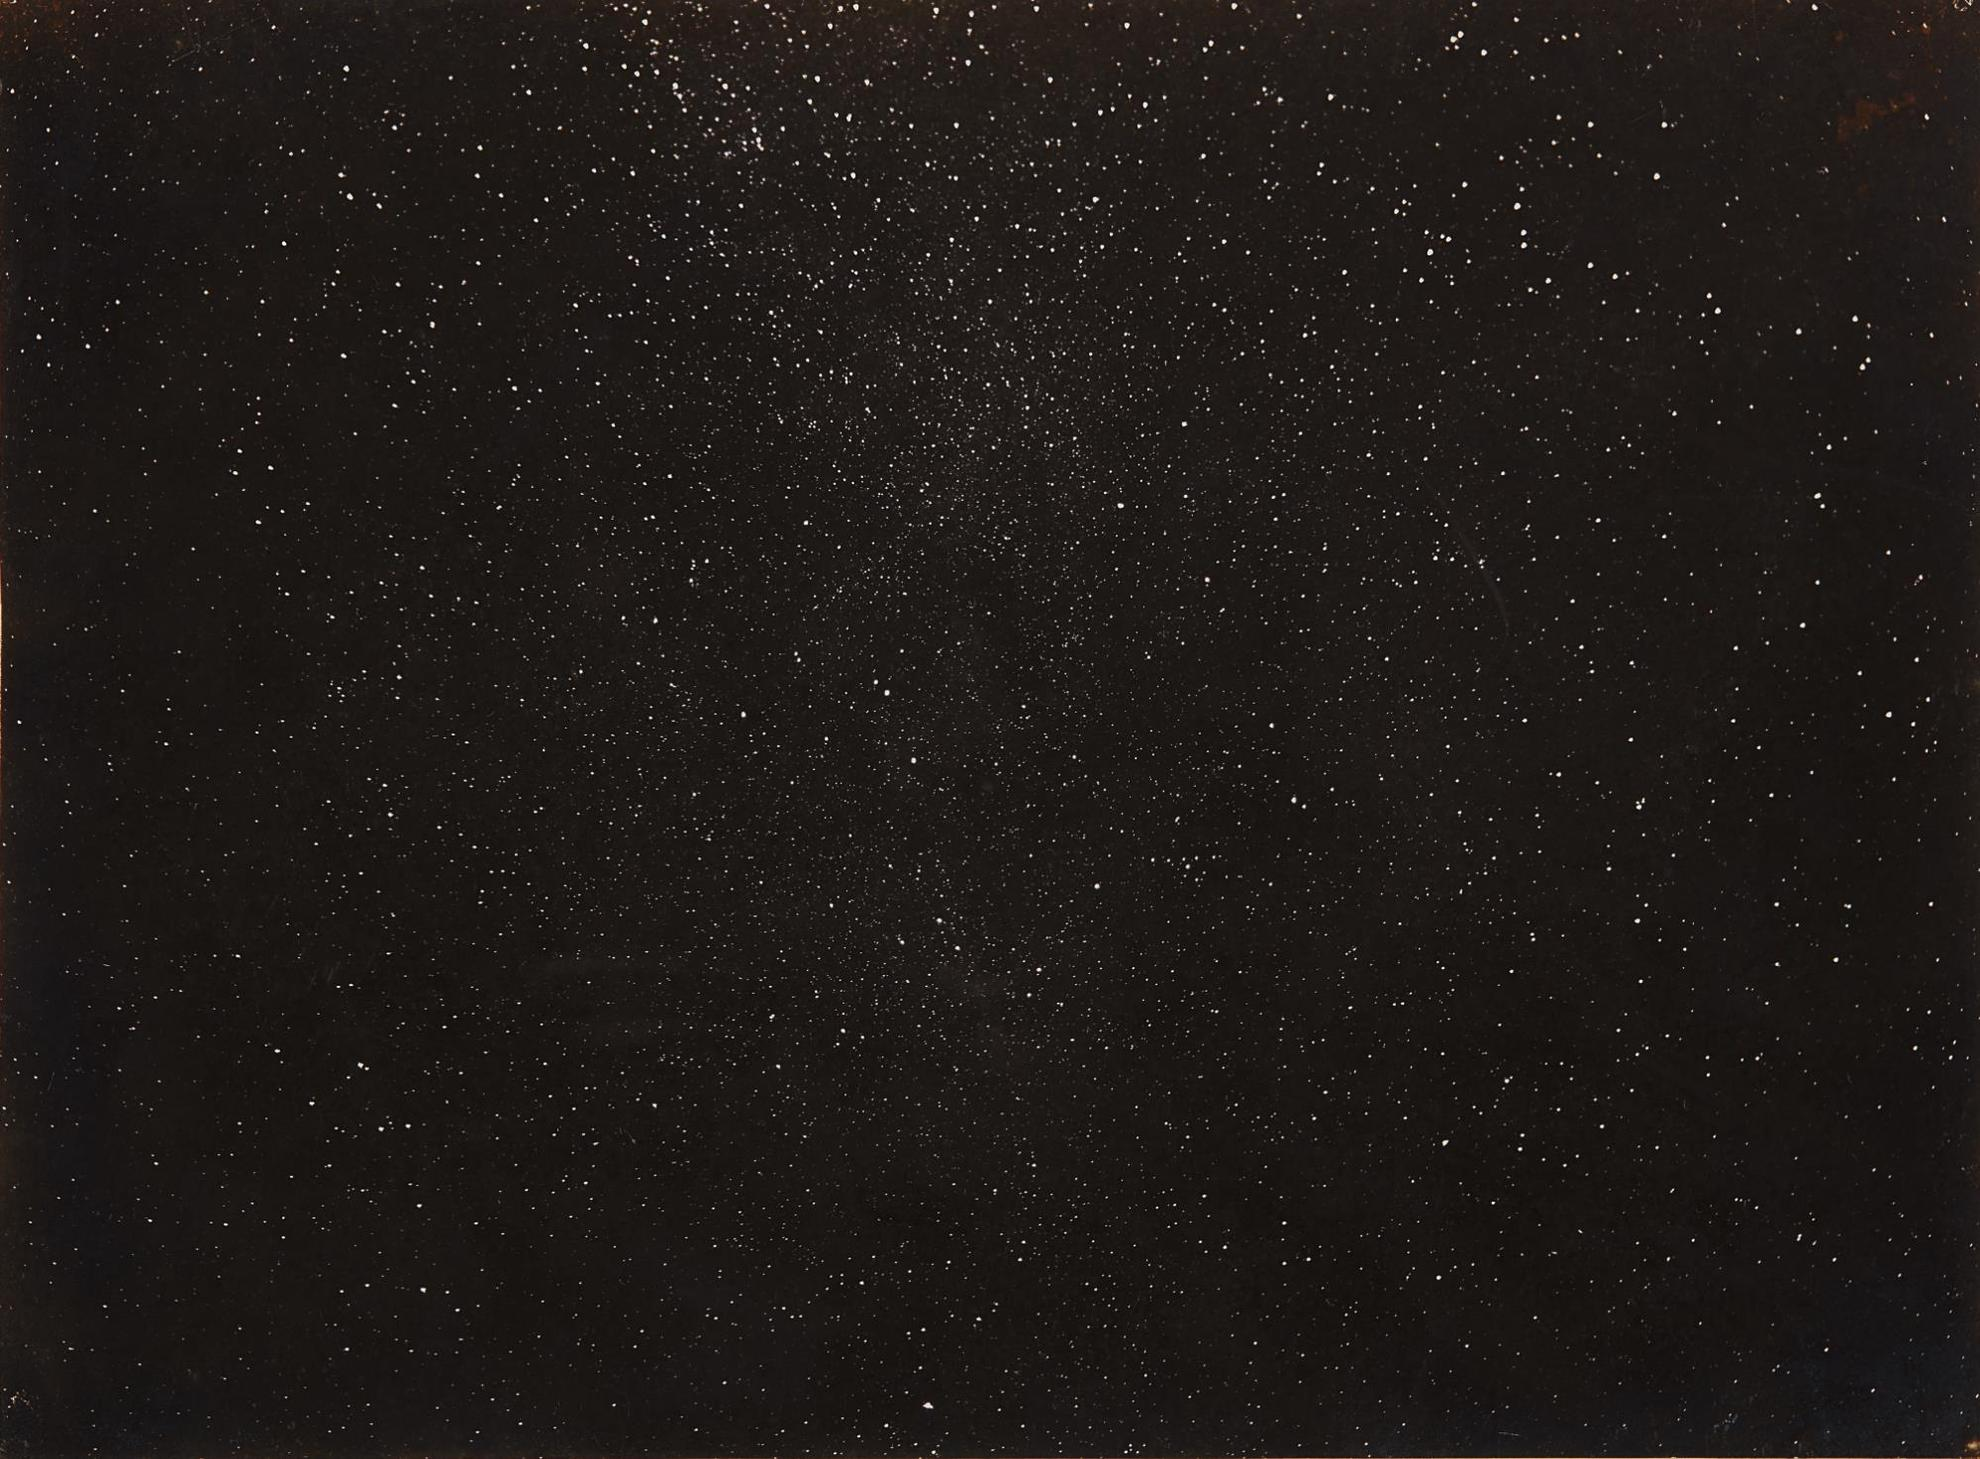 J. Milton Offord-The Milky Way In Sagitta, Aguila, Vulpecula & Lyra, July 22, 1901, 2 Hour Exposure-1901